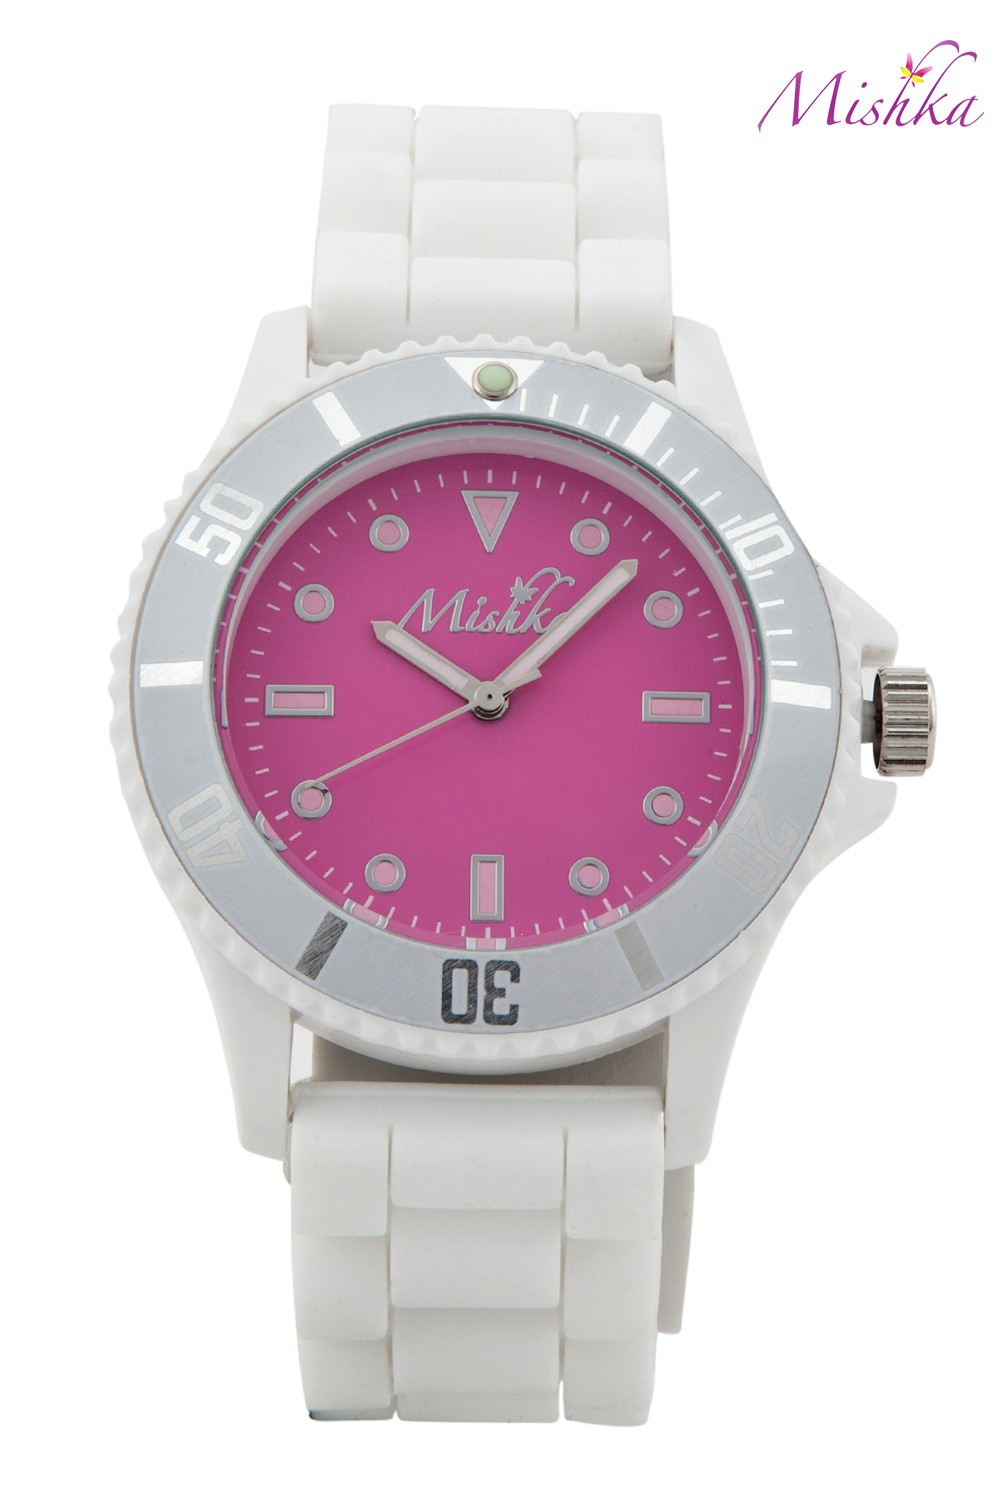 Styleever colorful watches for girls women for Watches for girls